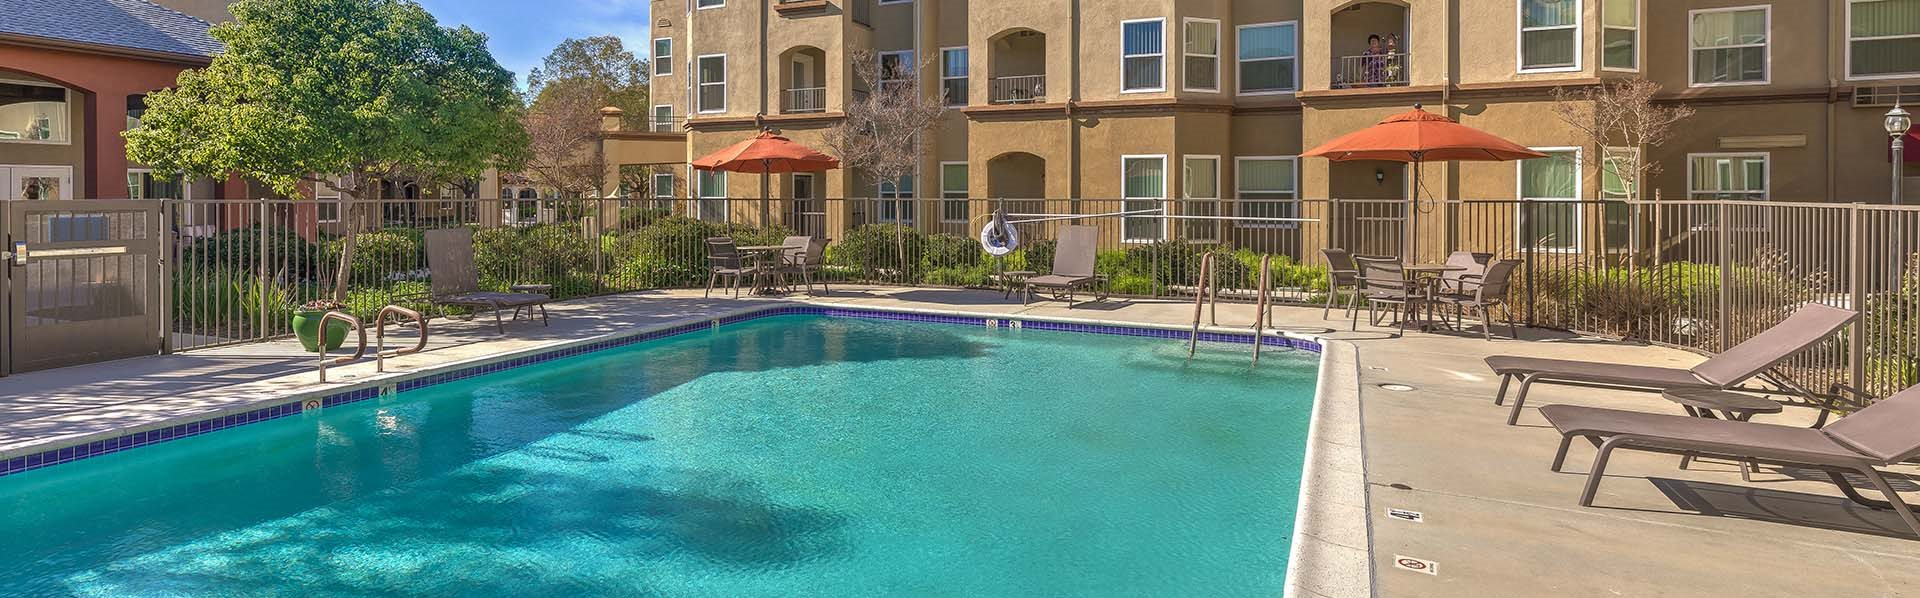 Pool with lounge chairs  l Vintage at Bouquet Canyon Senior Apartments